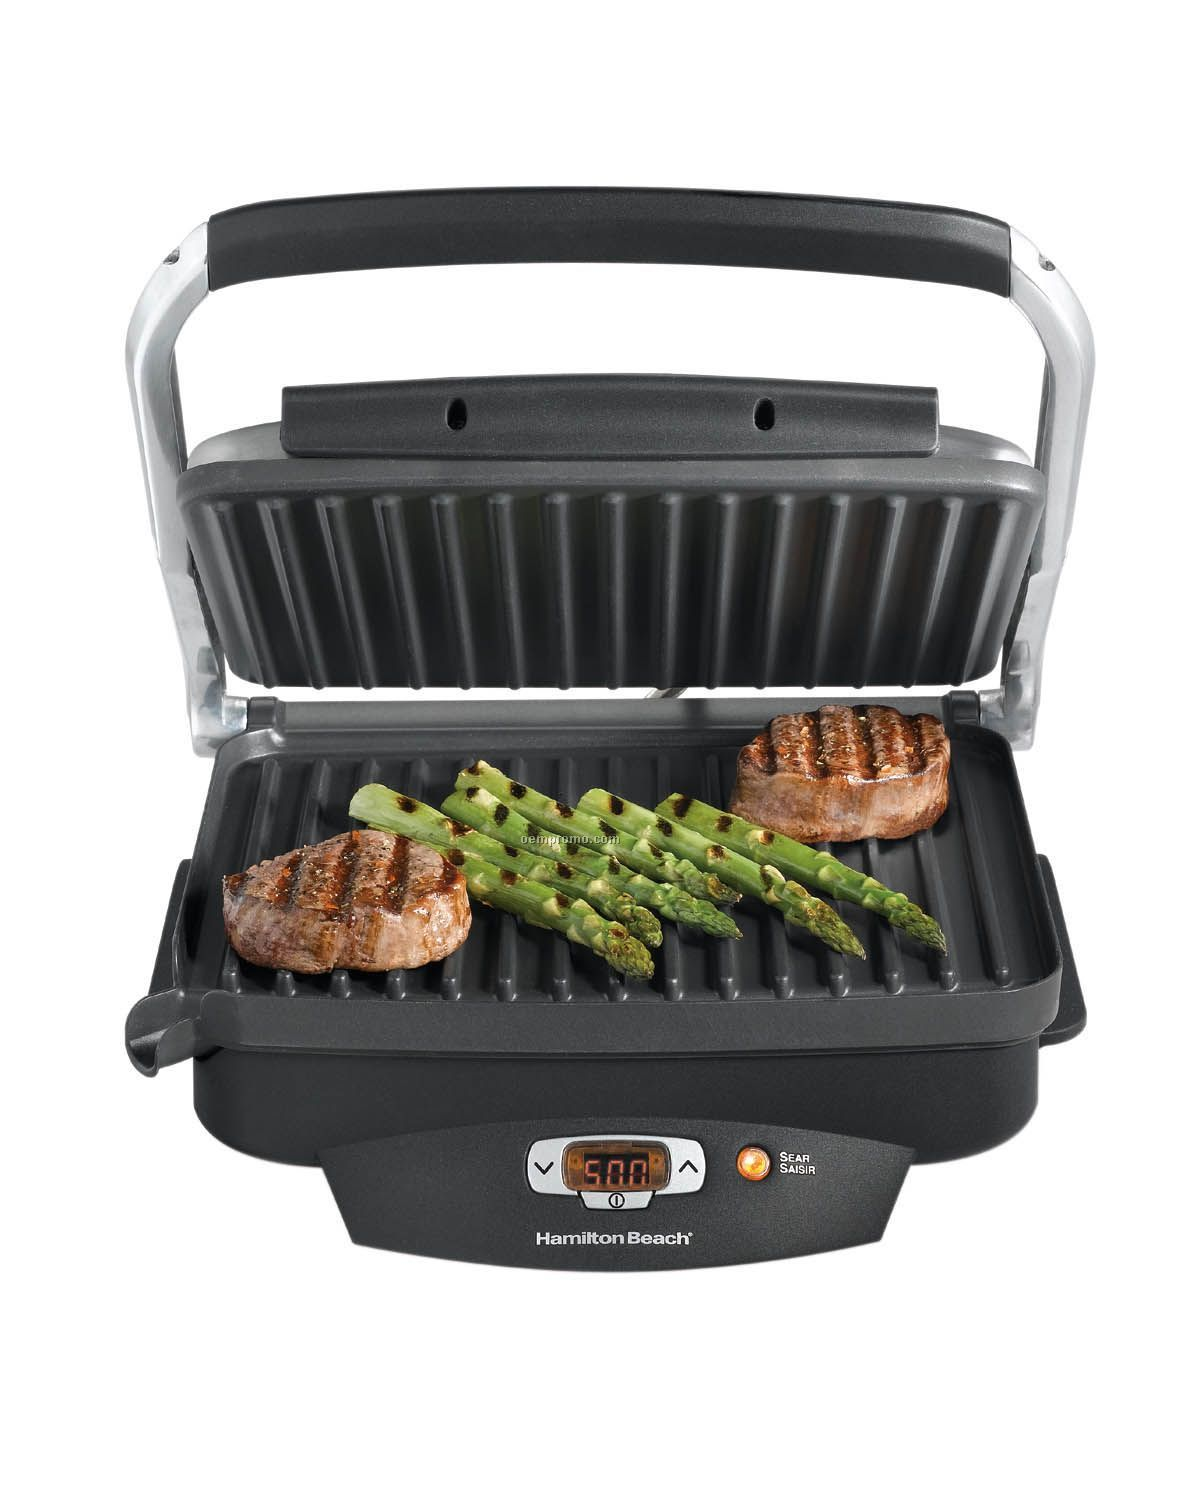 Hamilton Beach Super Sear Indoor Grill